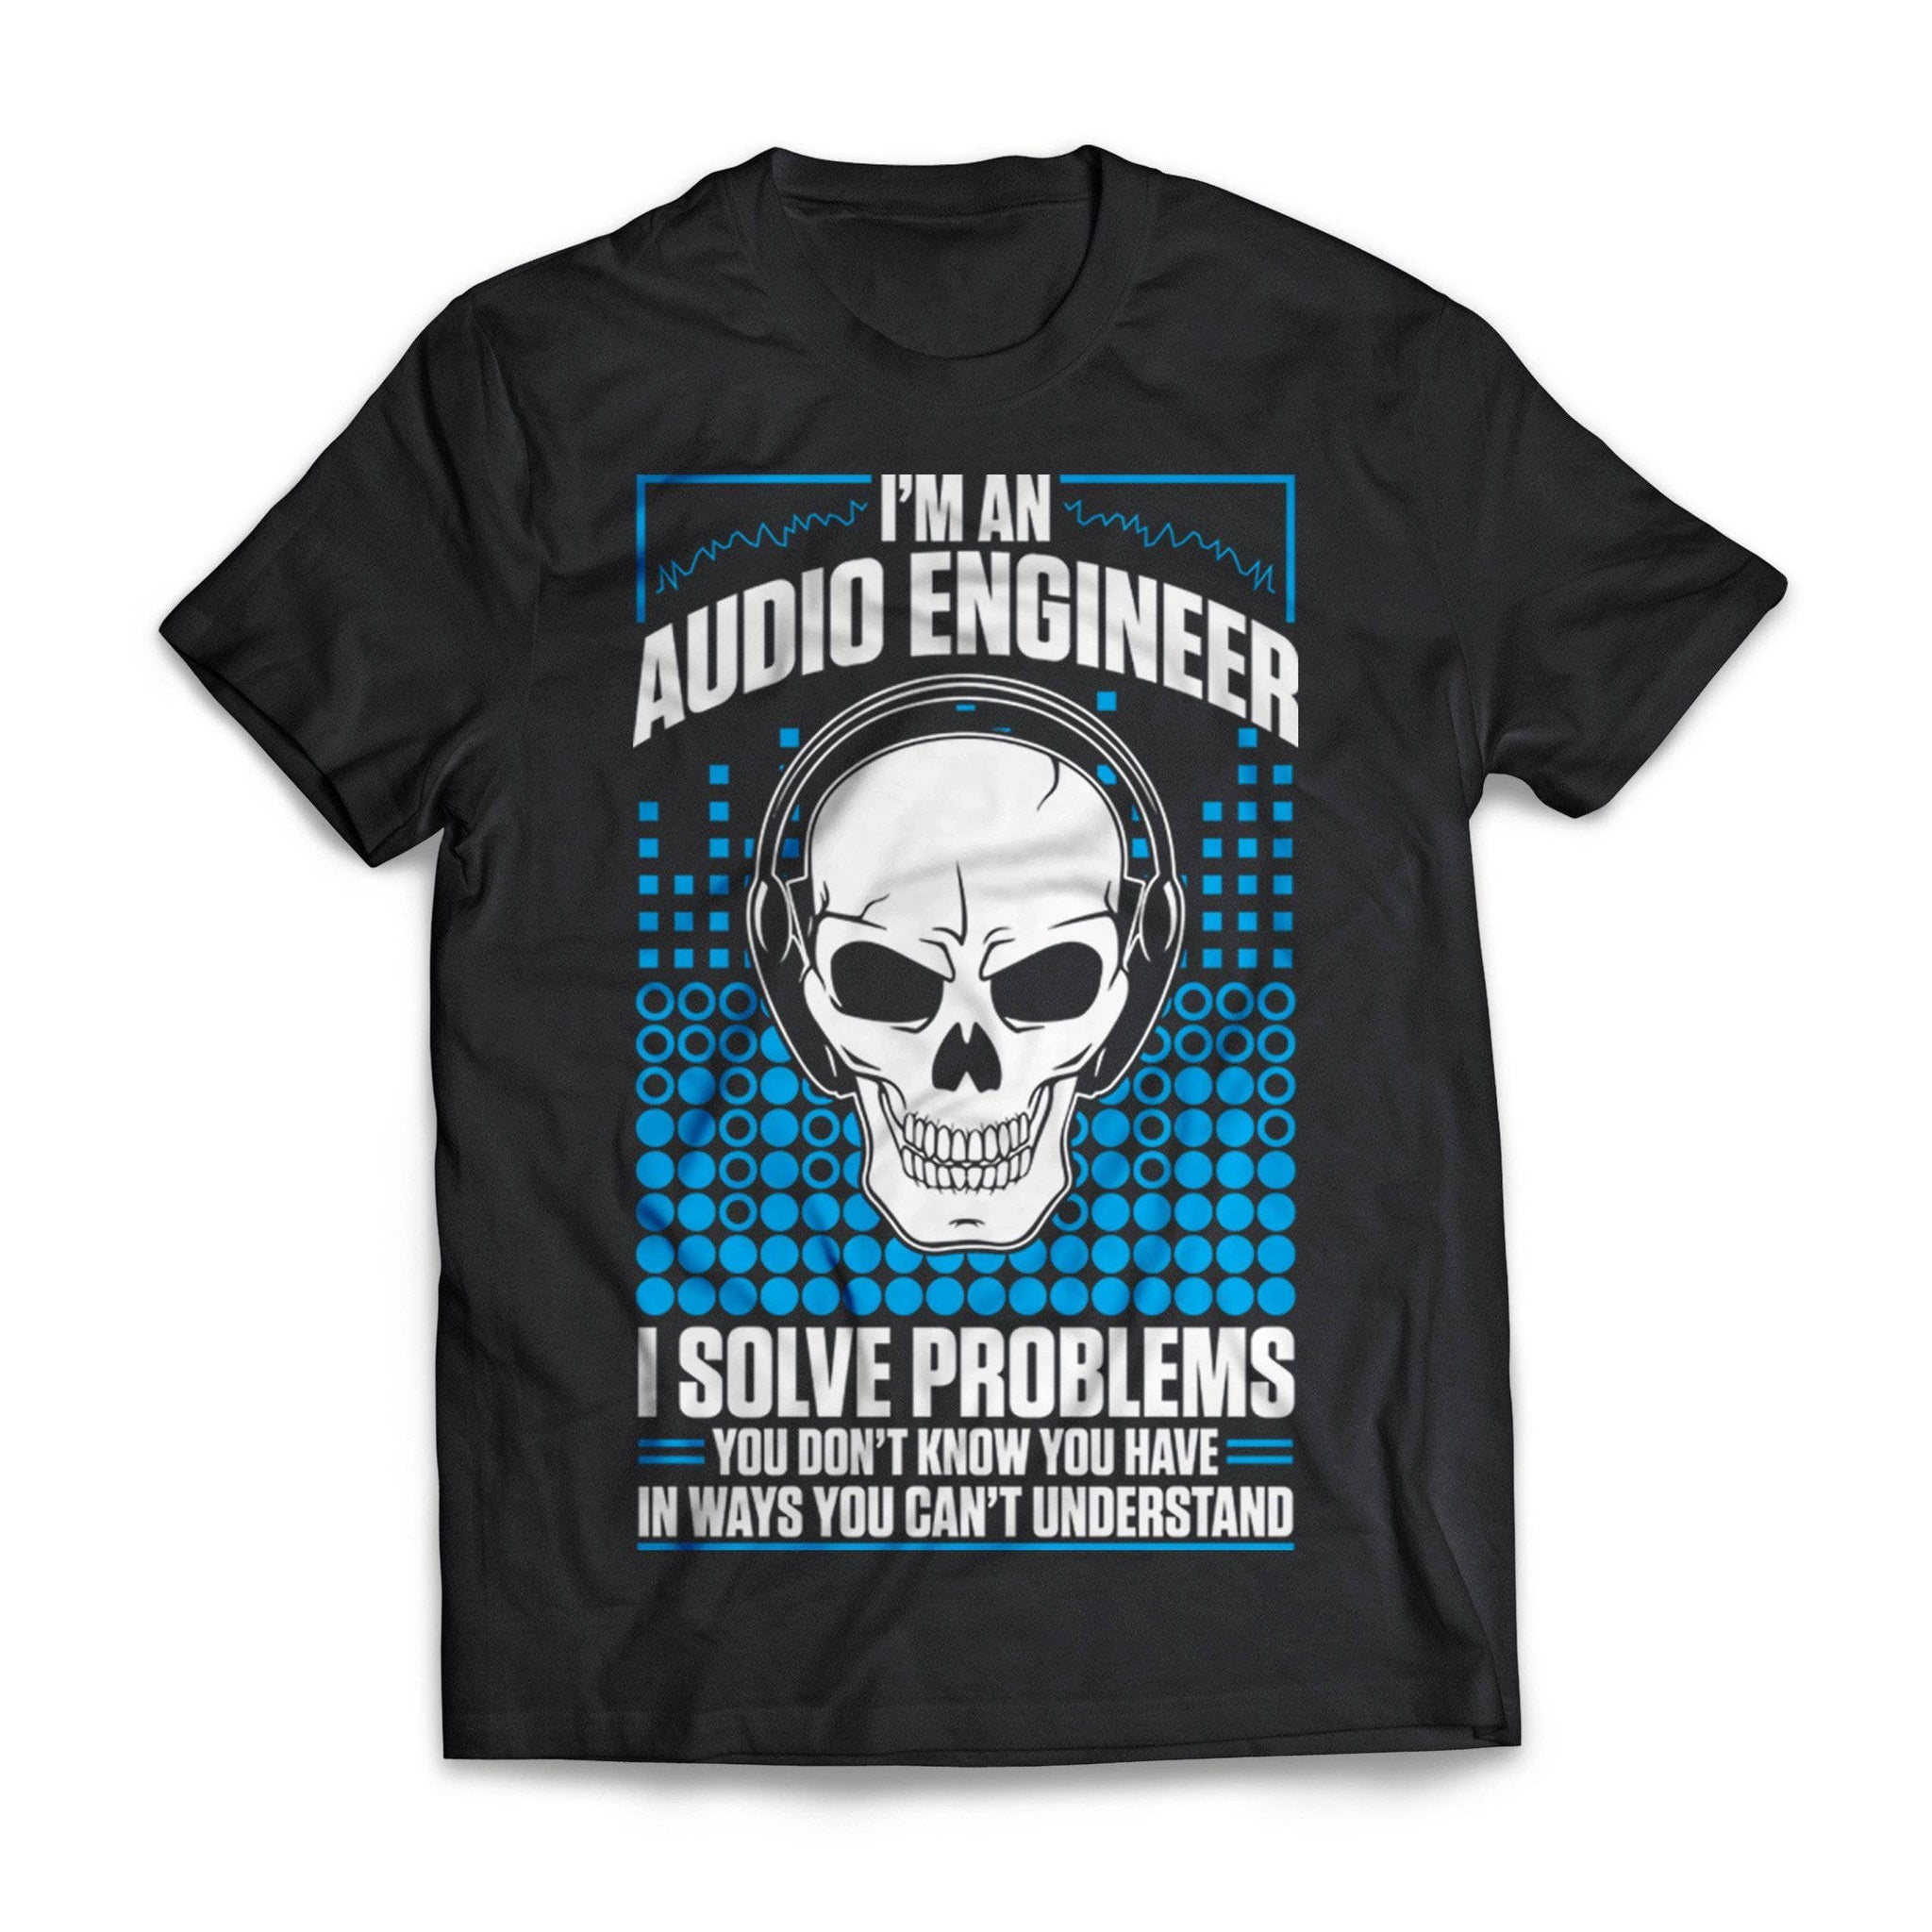 Audio Engineer Solve Problems